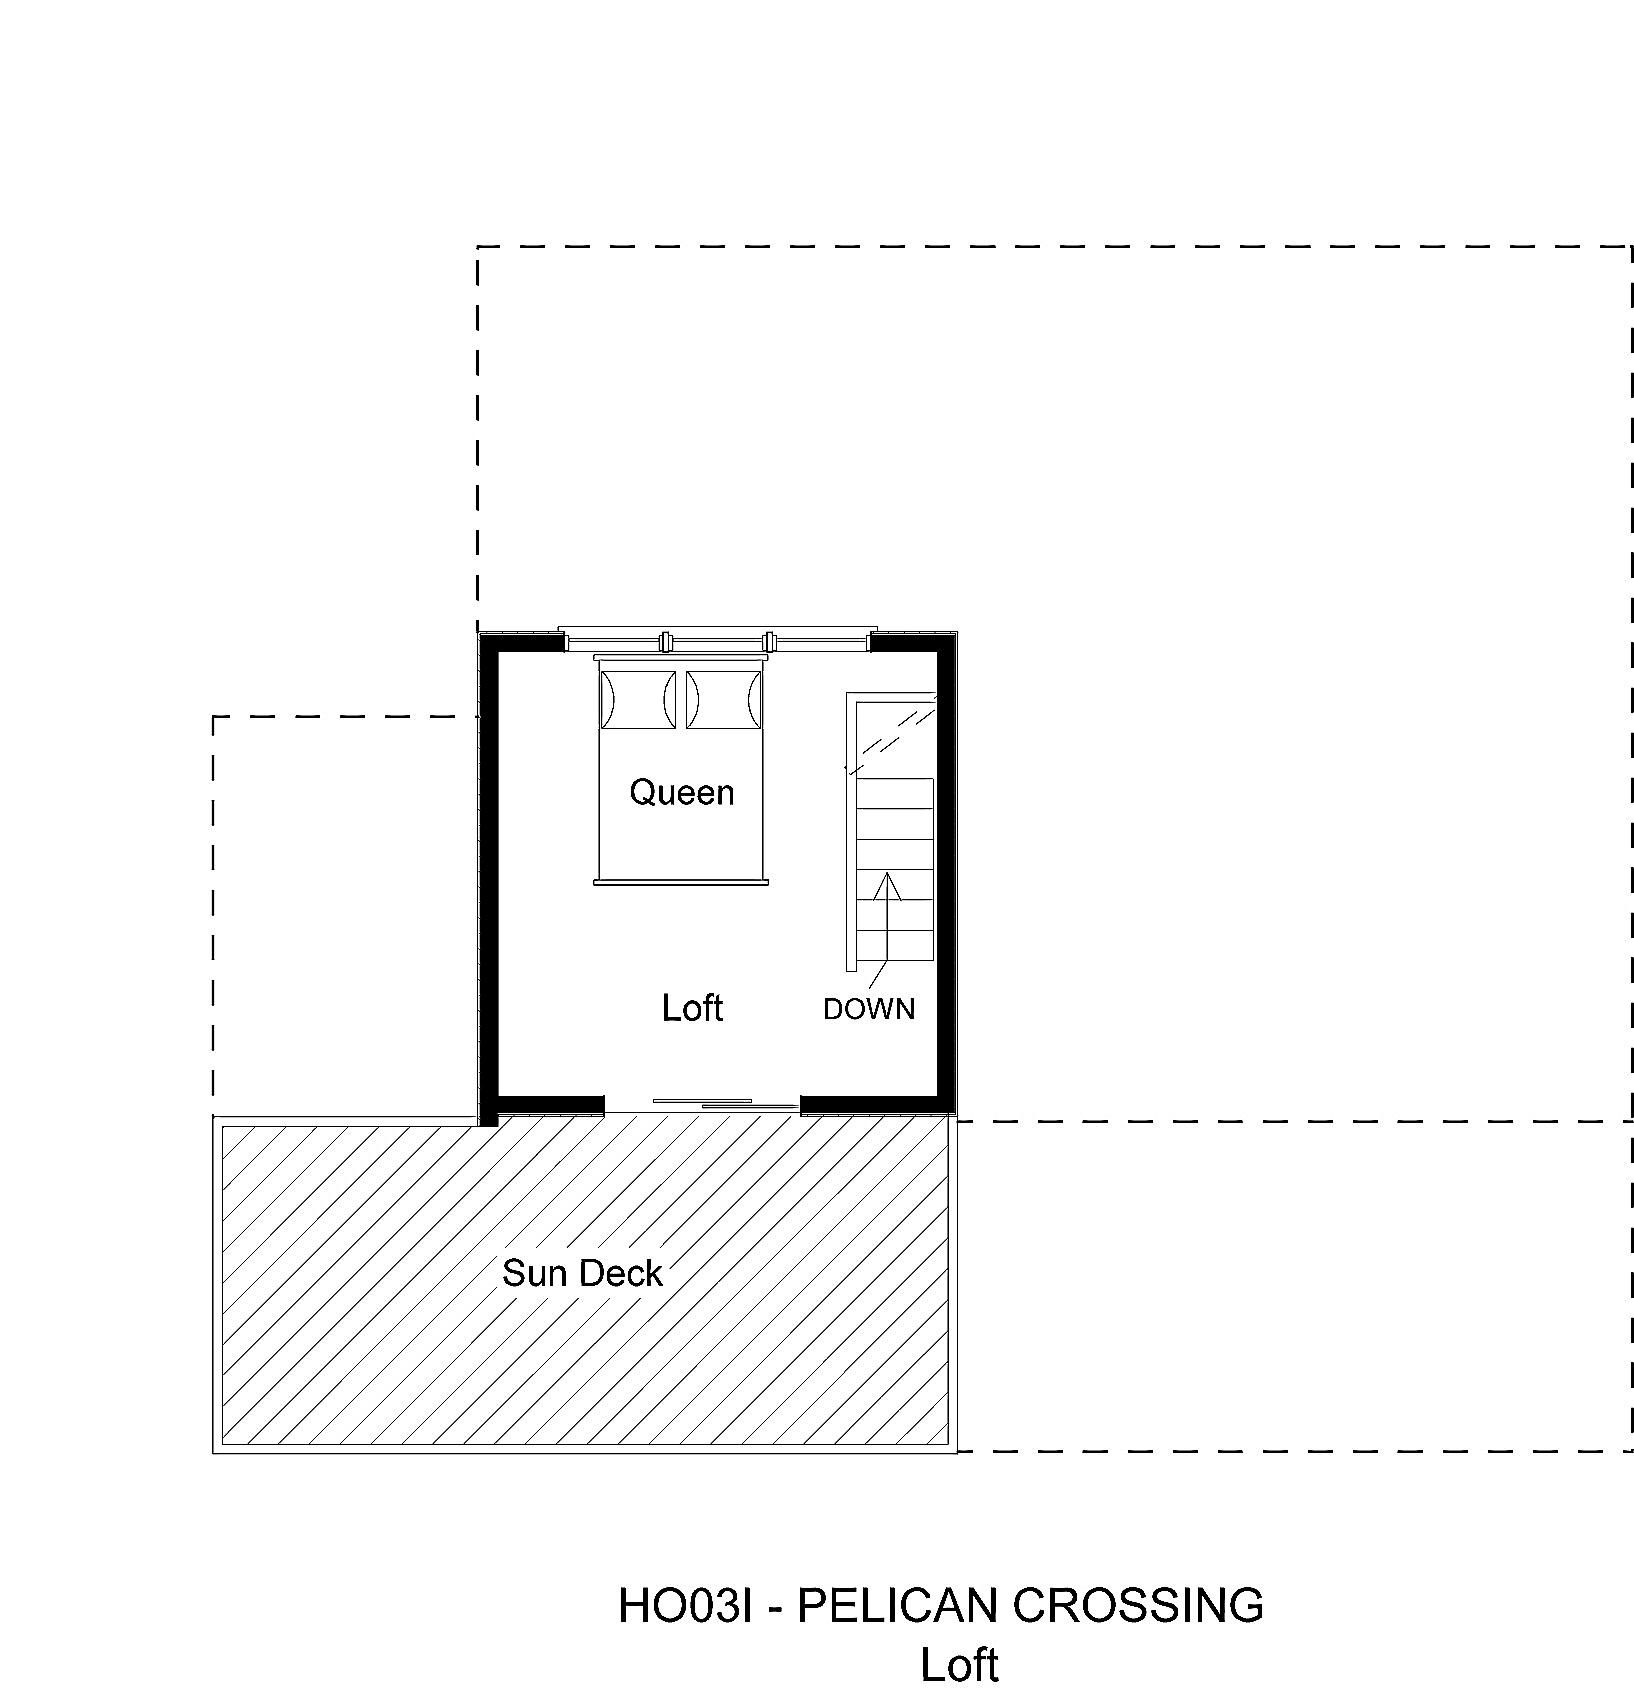 HO03I Pelican Crossing - Floorplan Level 3